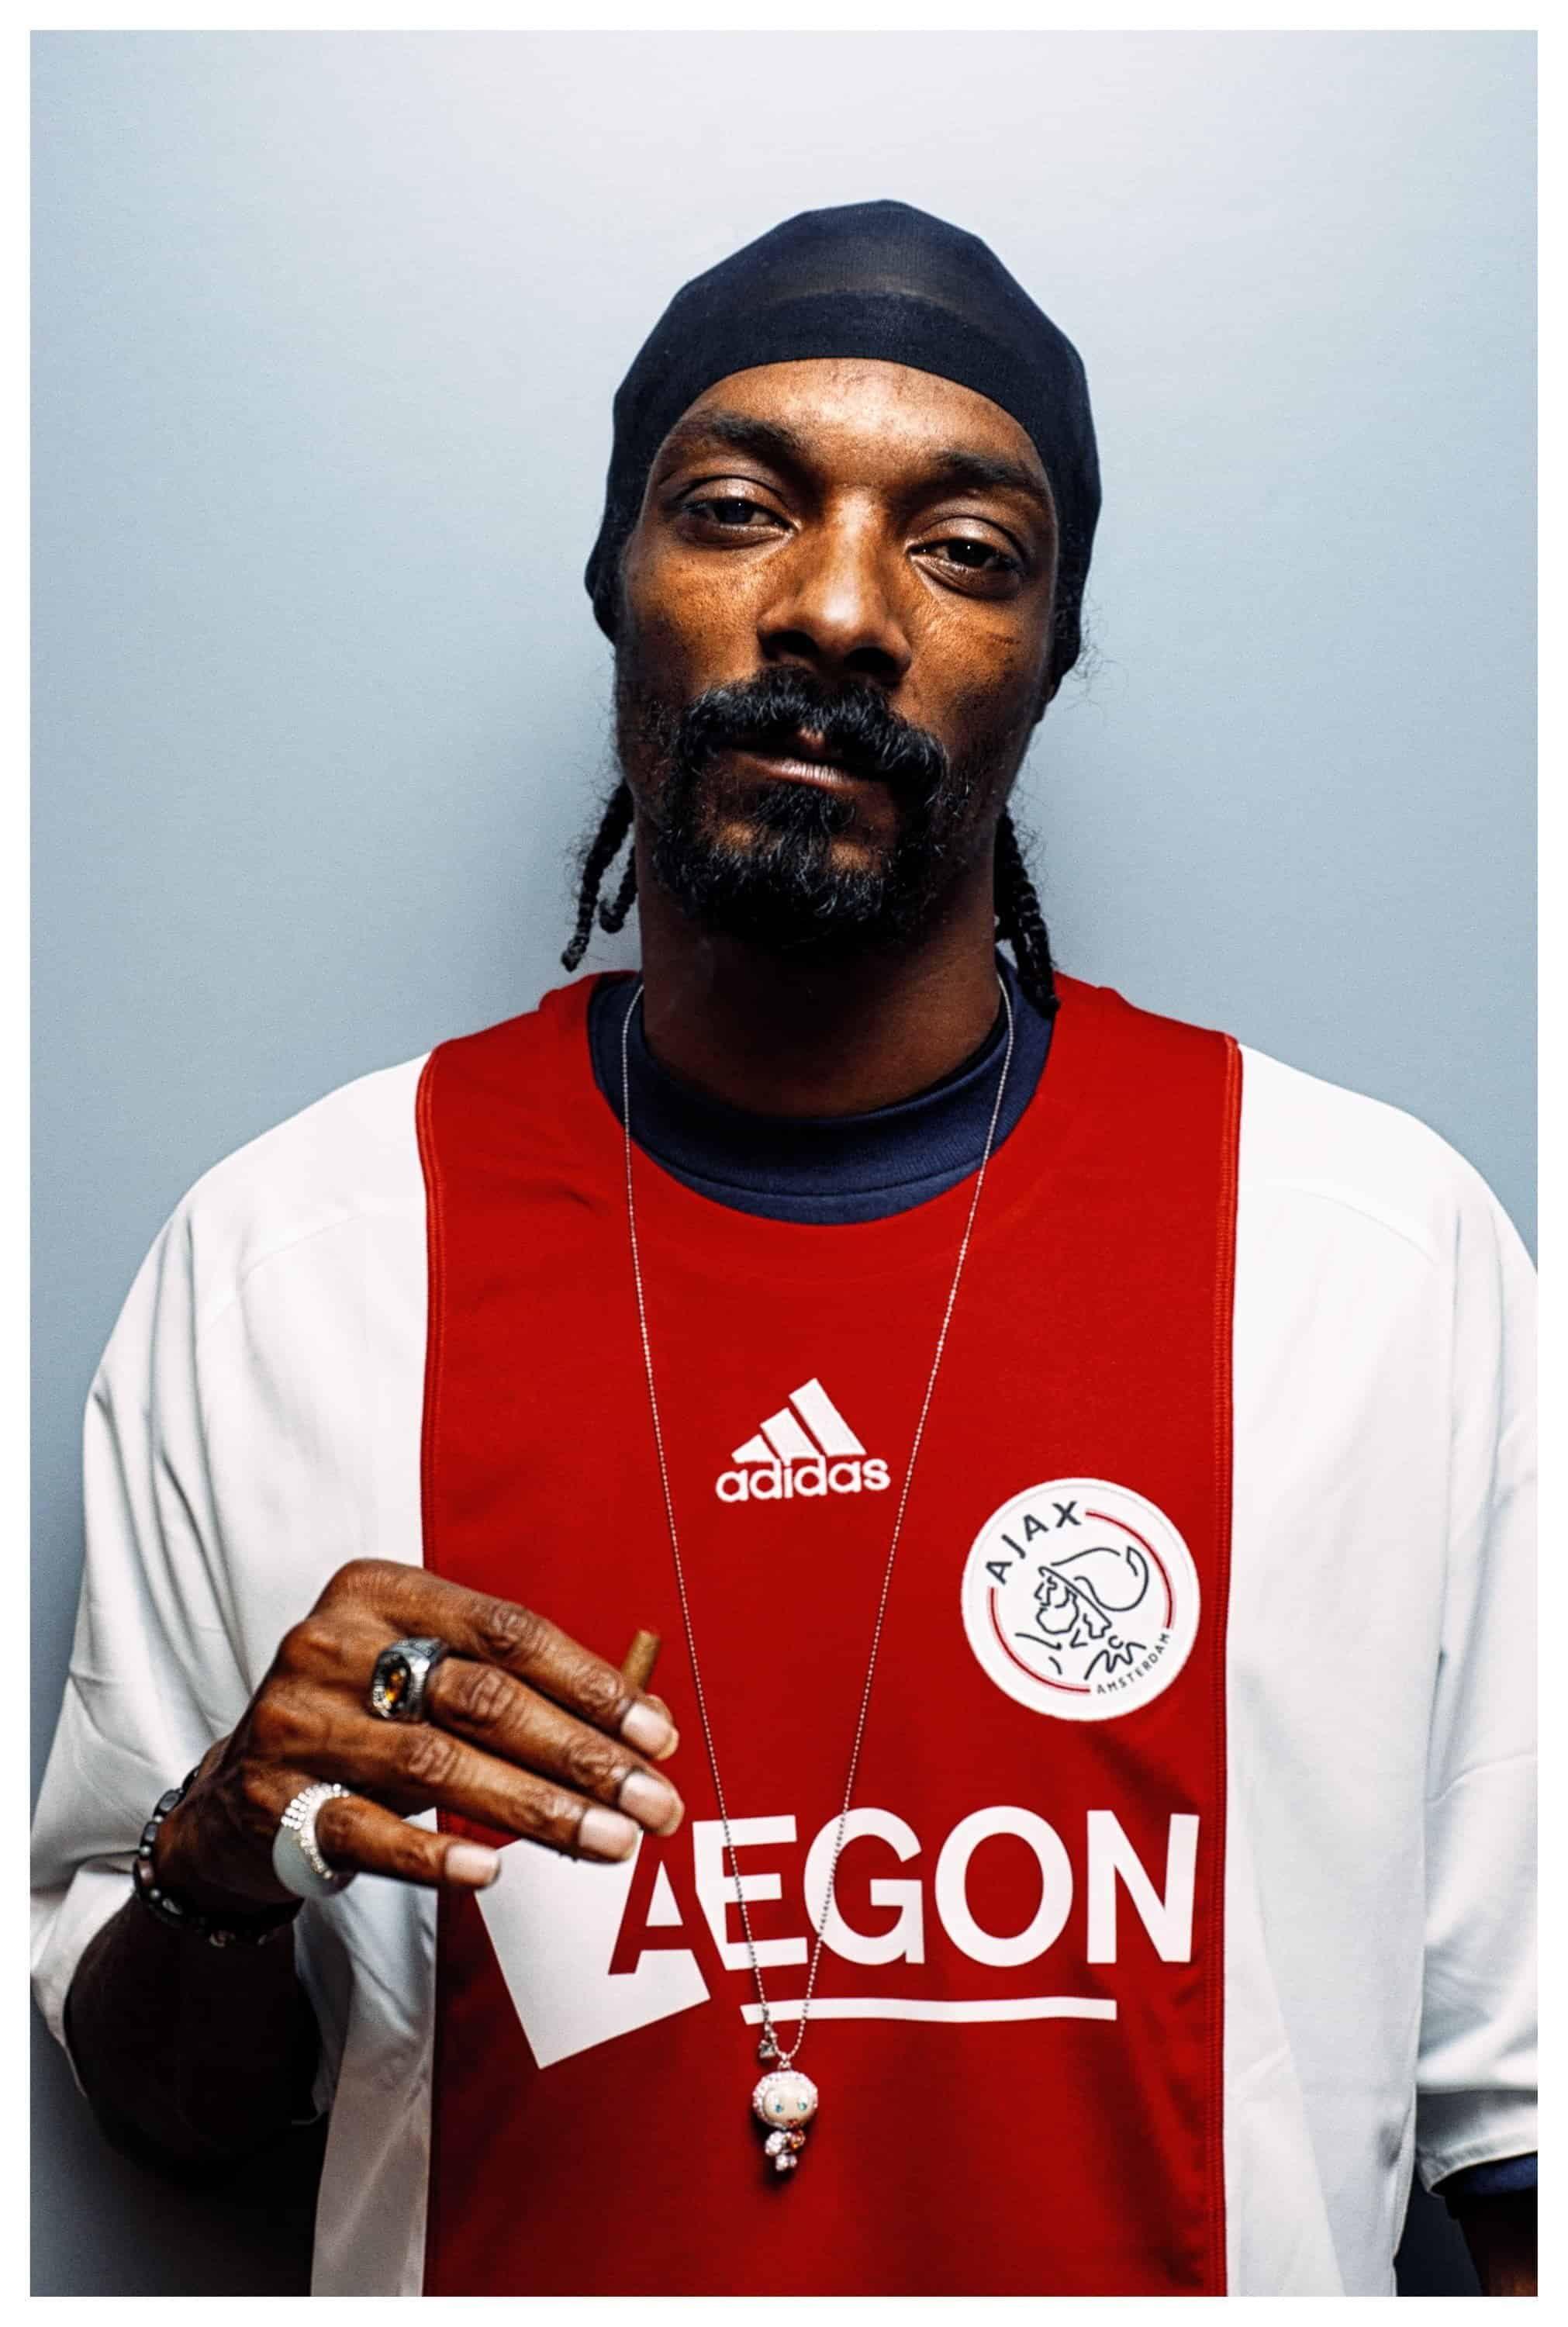 Ilja Meefout - Portraits of Hip Hop - Snoop Dogg